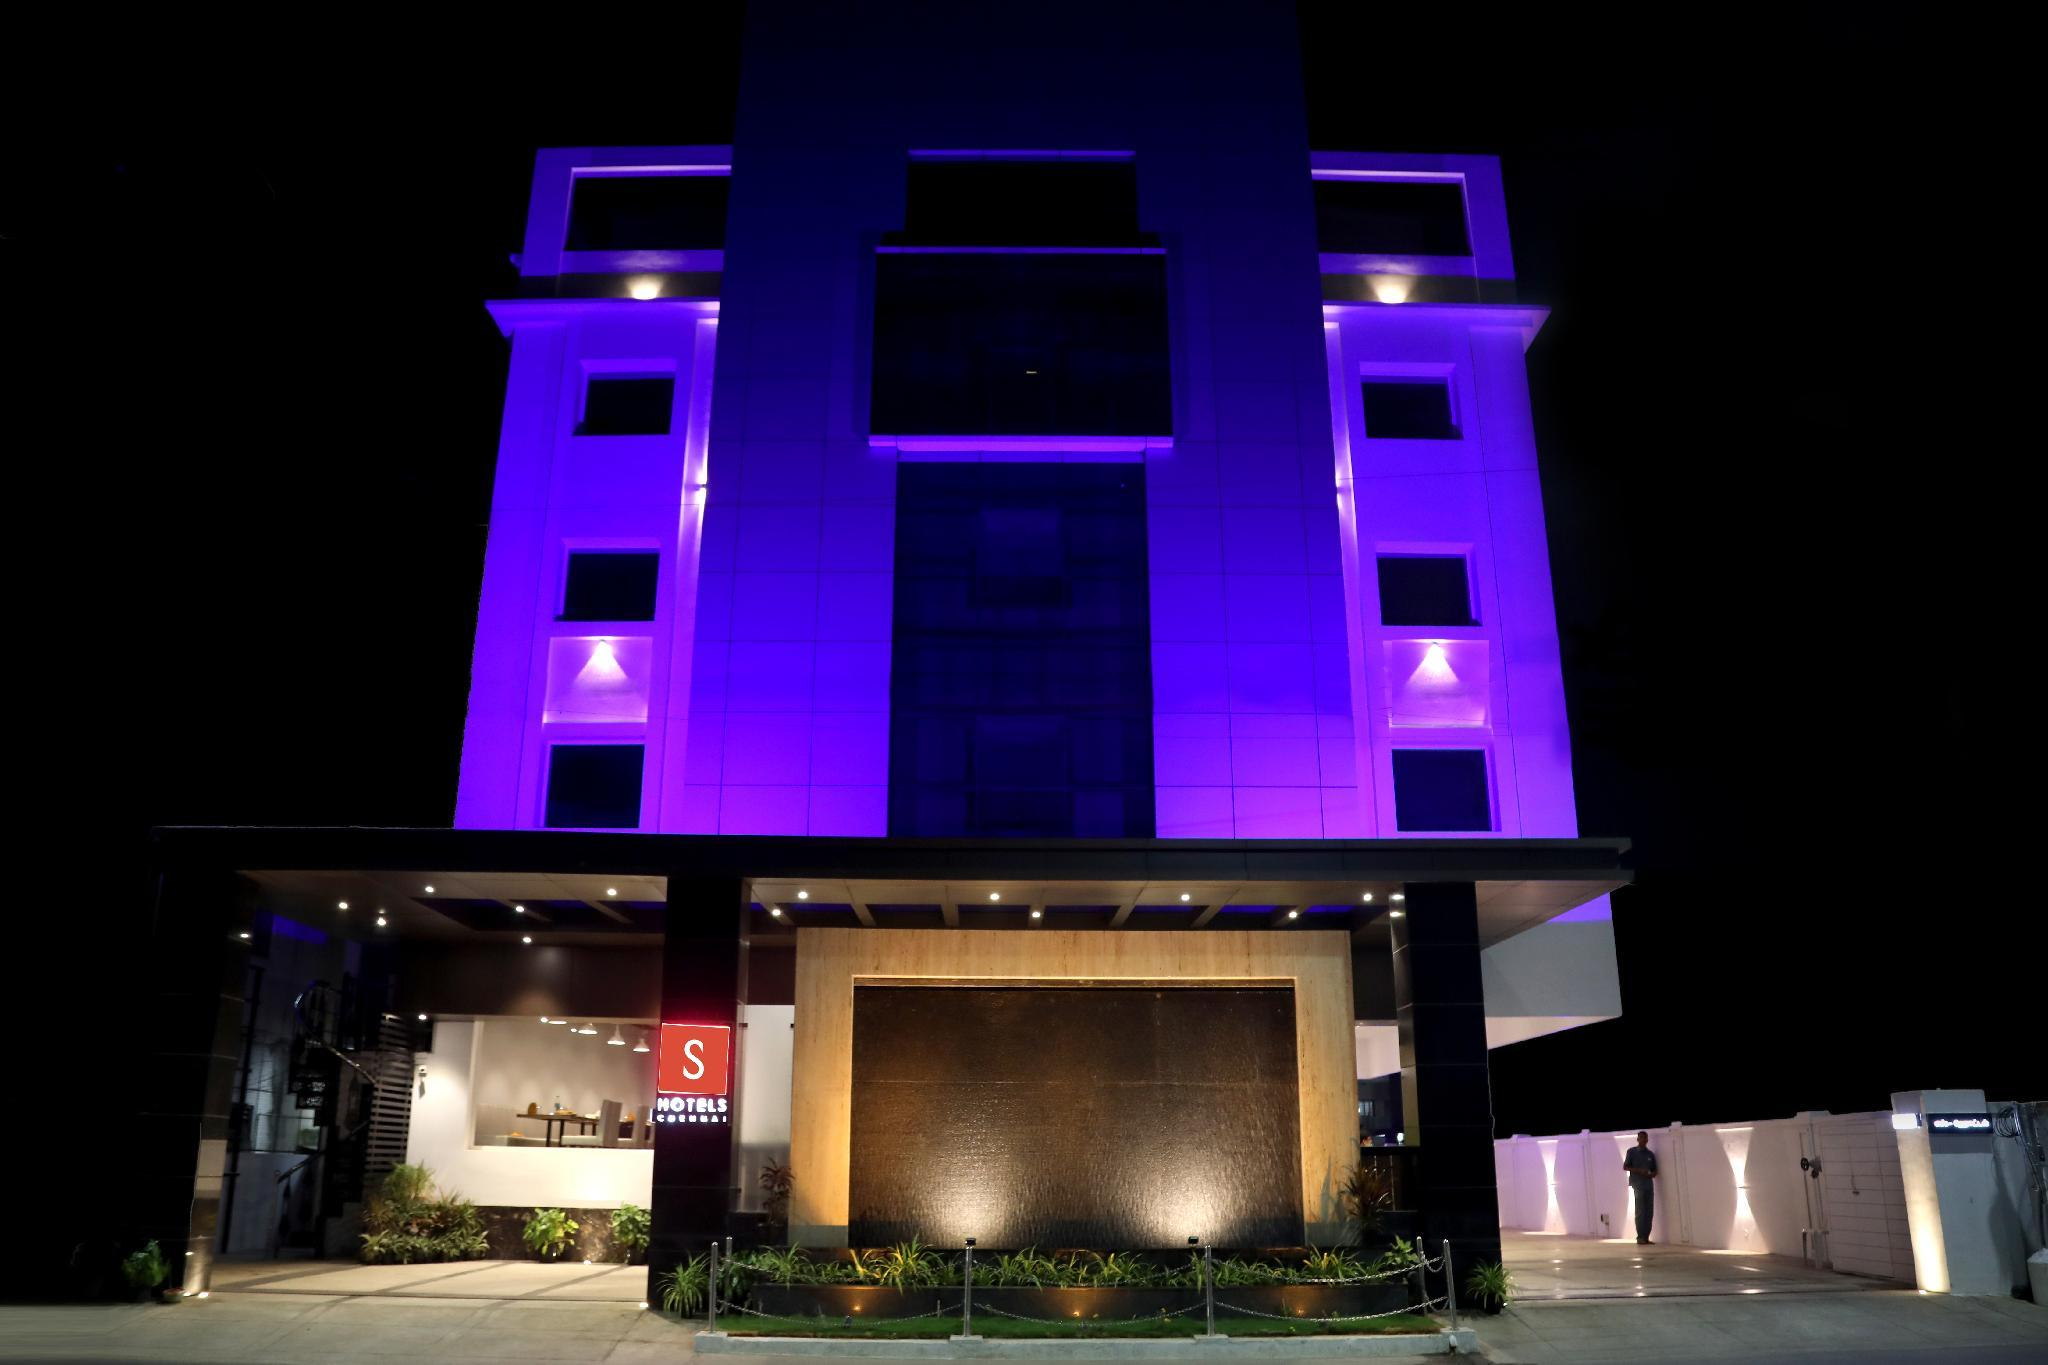 S Hotels